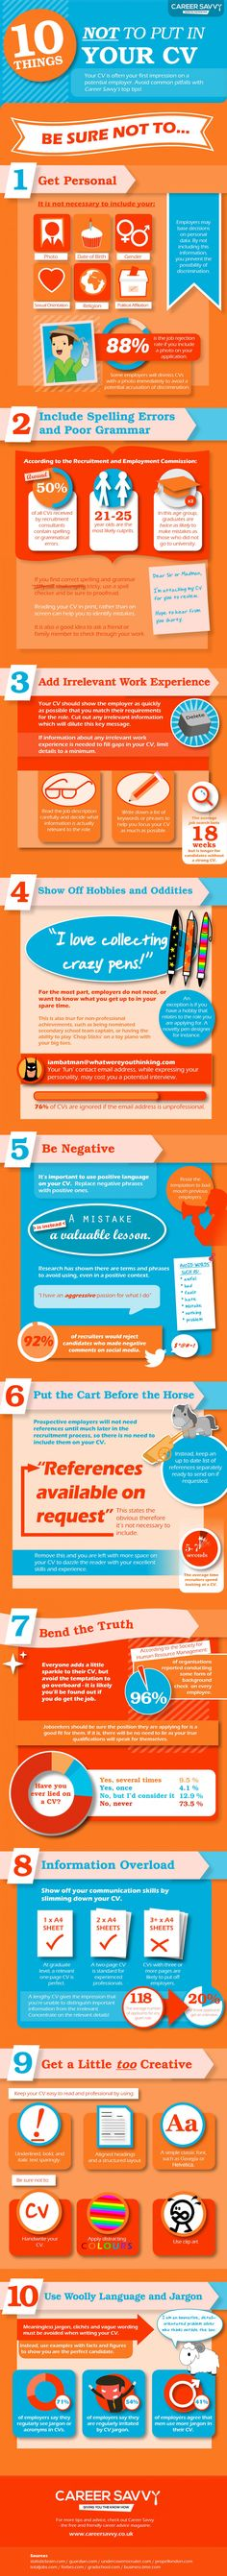 HOW TO Spruce Up a Boring Resume INFOGRAPHIC Crafting - things not to put on a resume